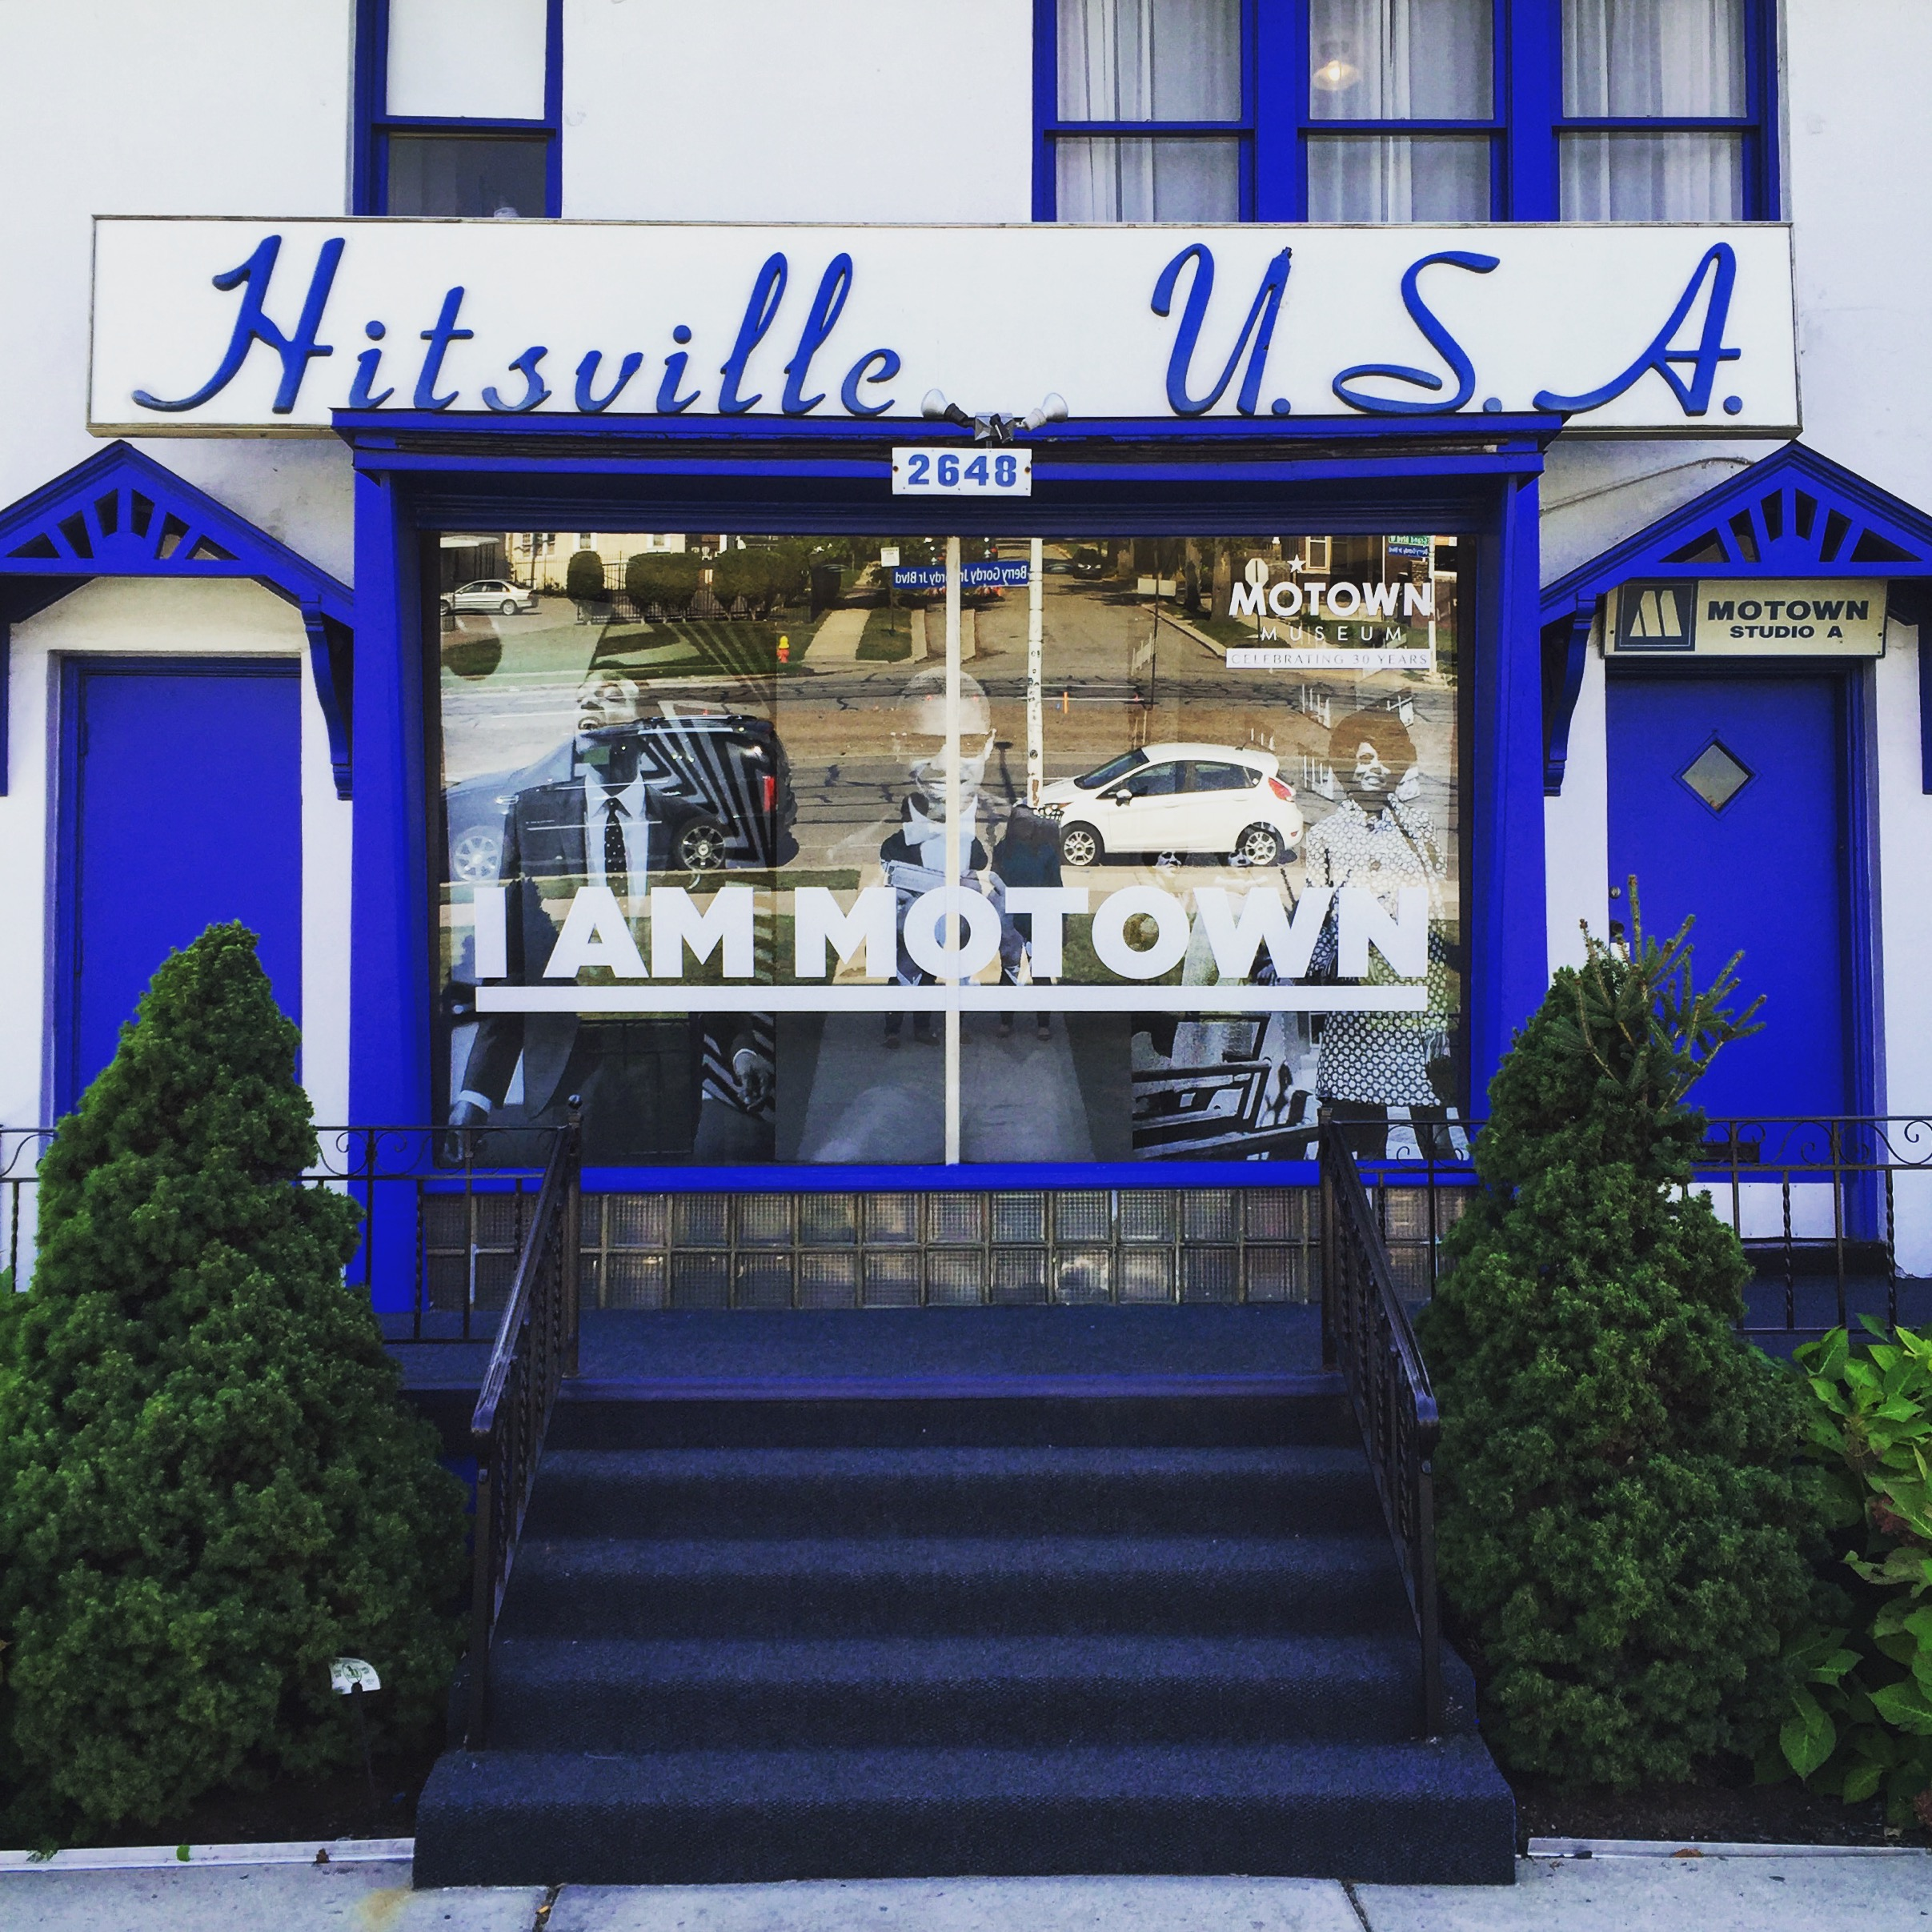 The front of a white house with blue doors and trim and the words Hitsville, USA on a sign